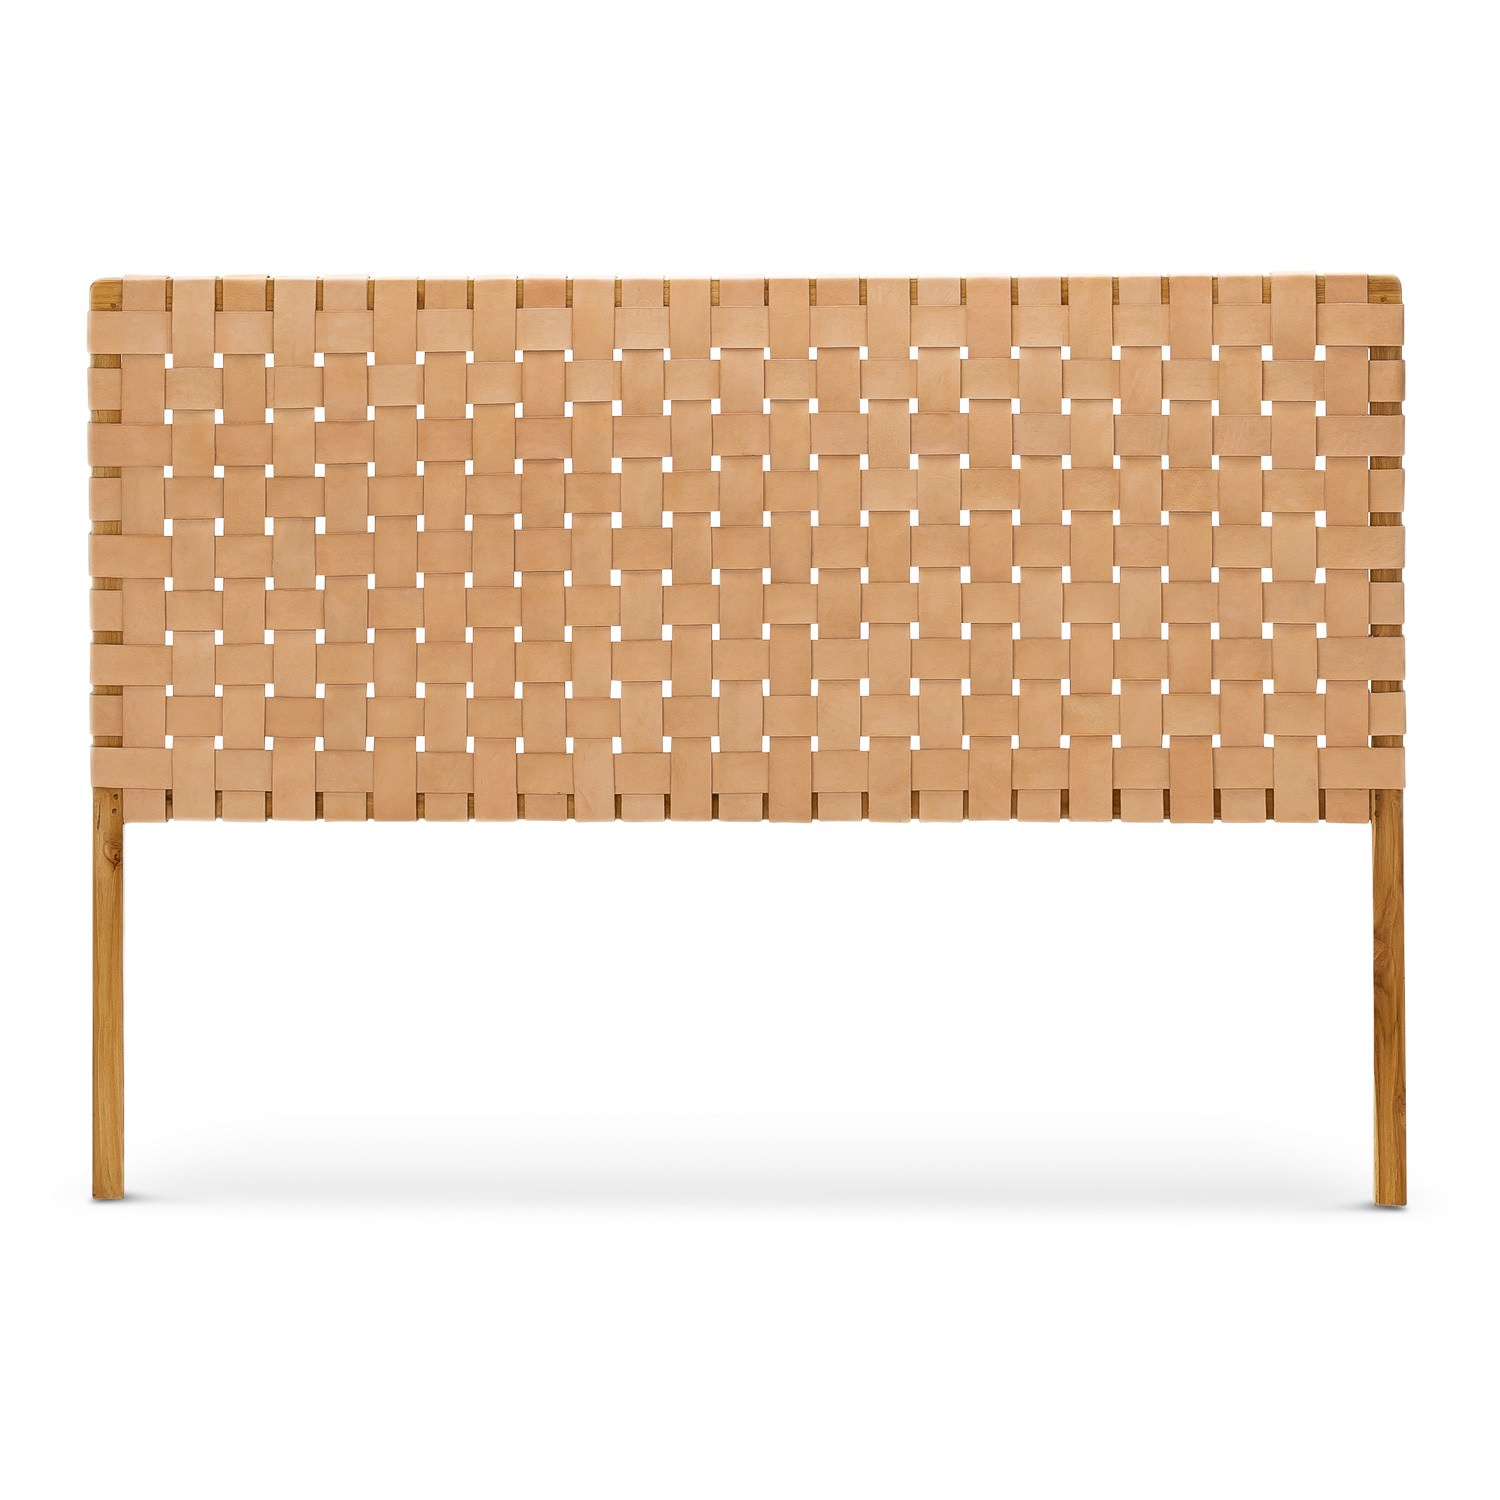 Lazie Woven Leather Teak Bed Headboard Queen Tan Natural